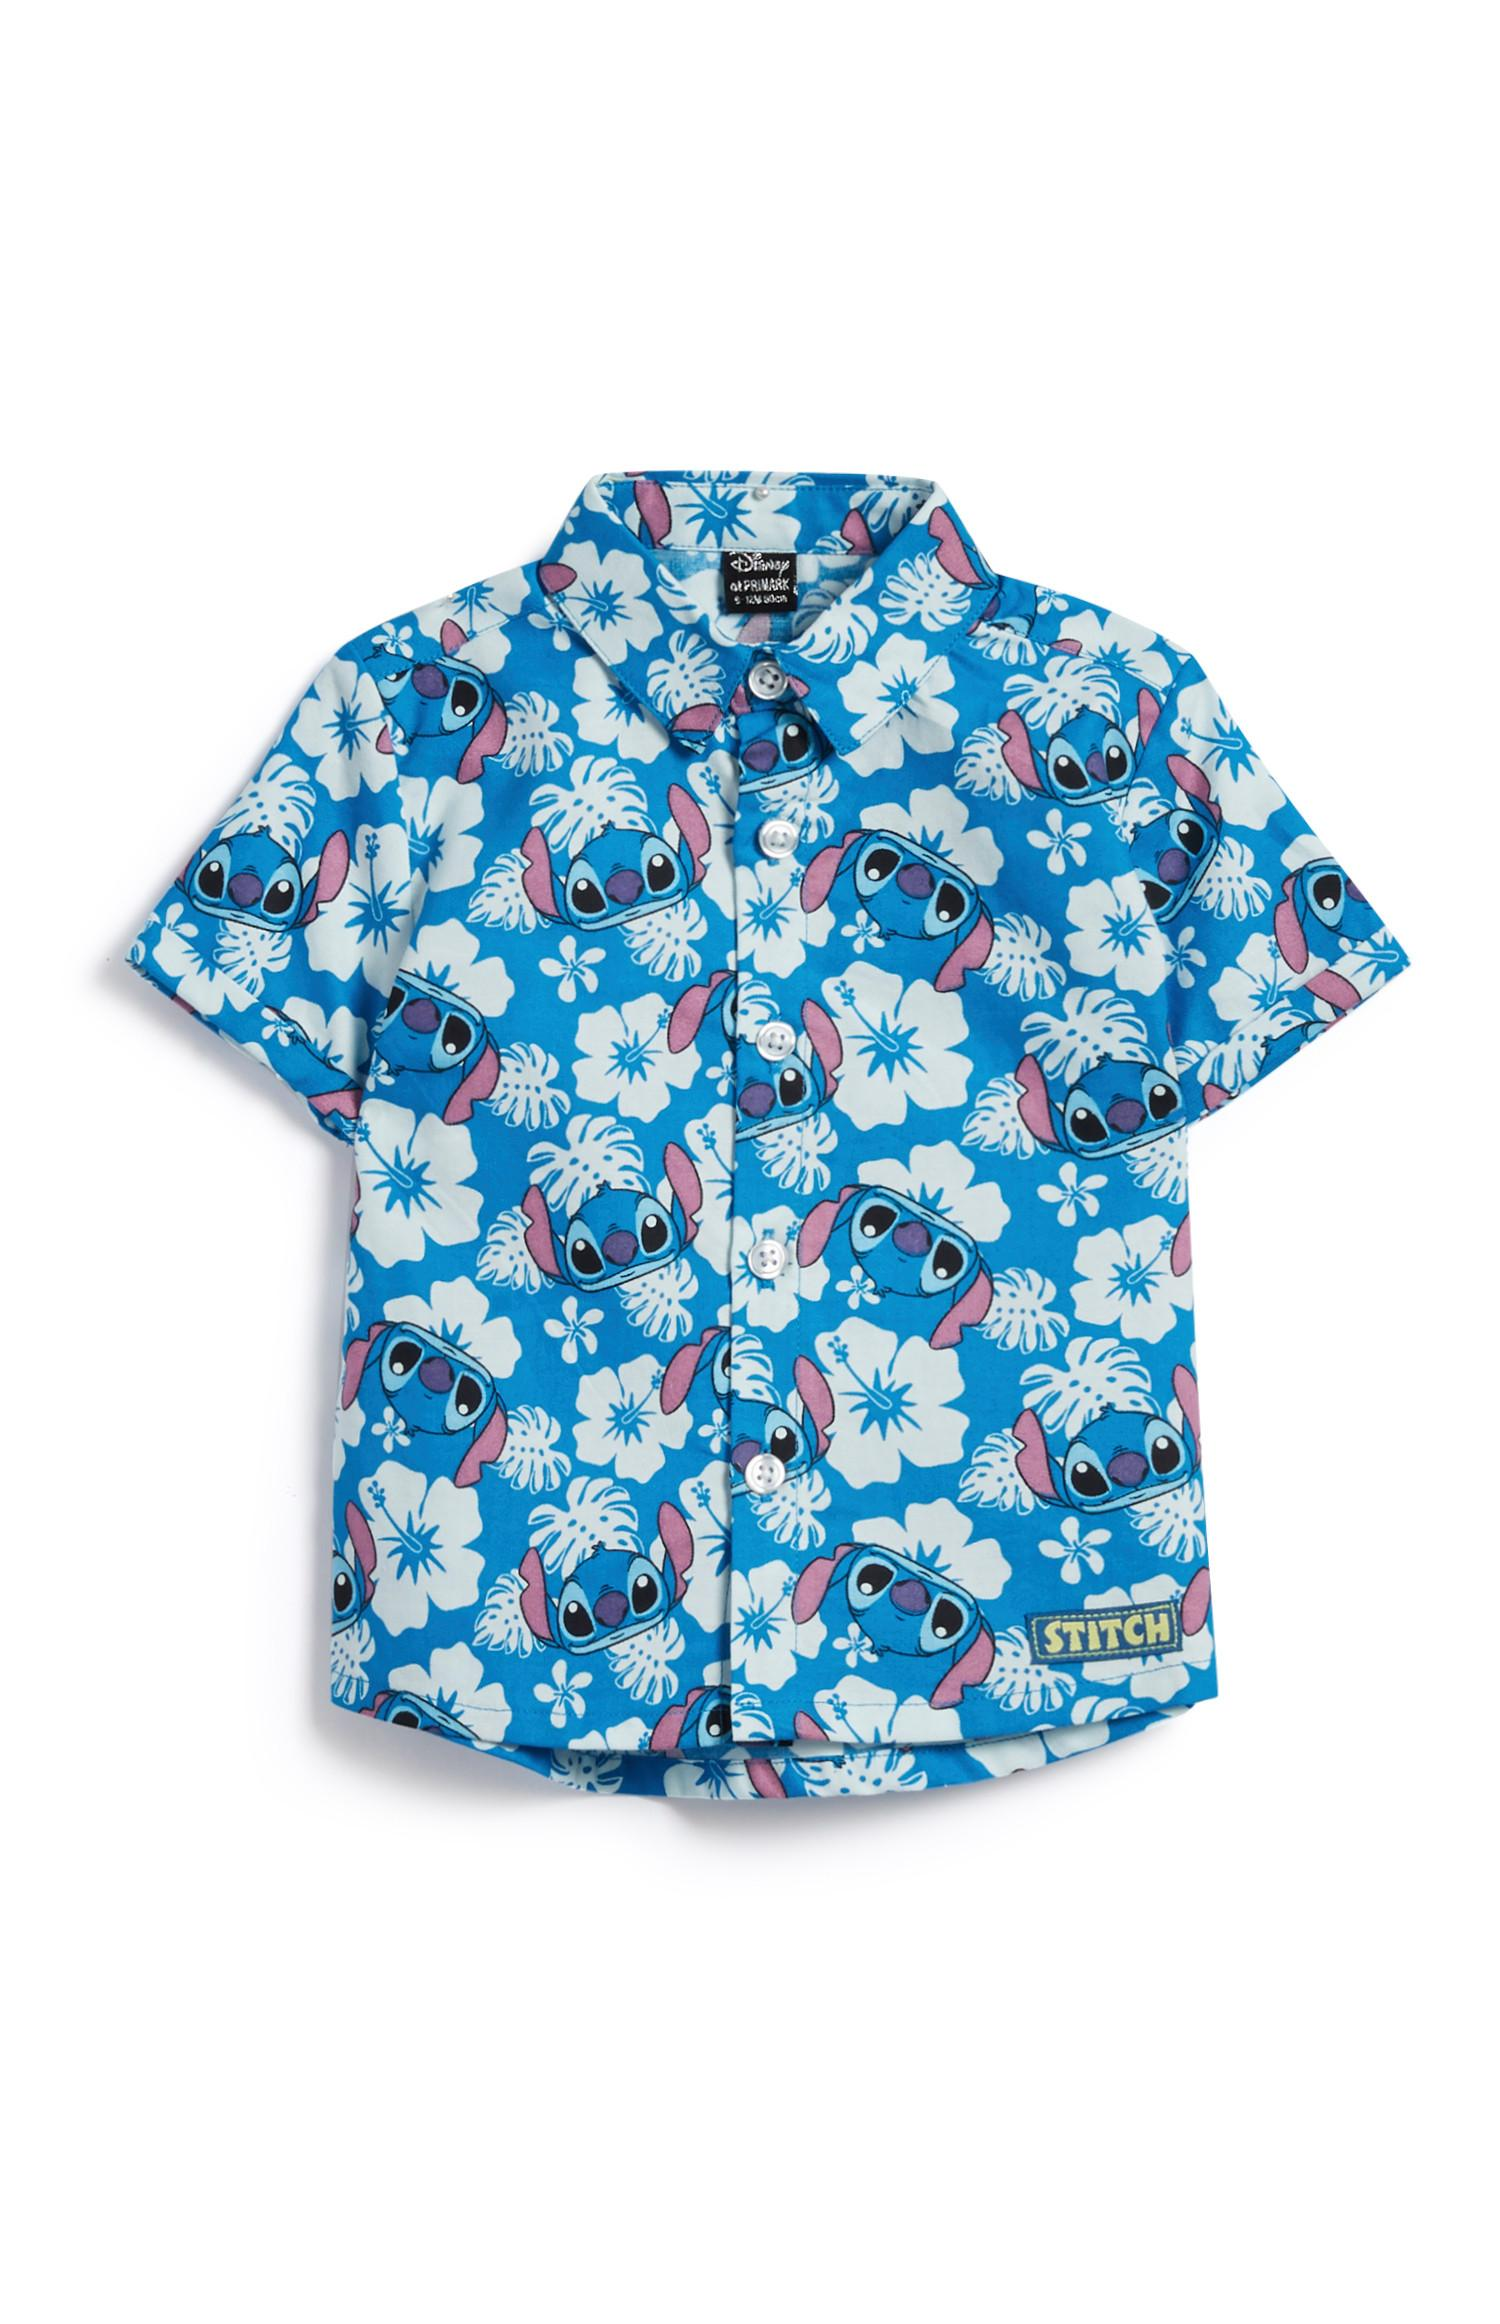 Baby Boy Stitch Shirt